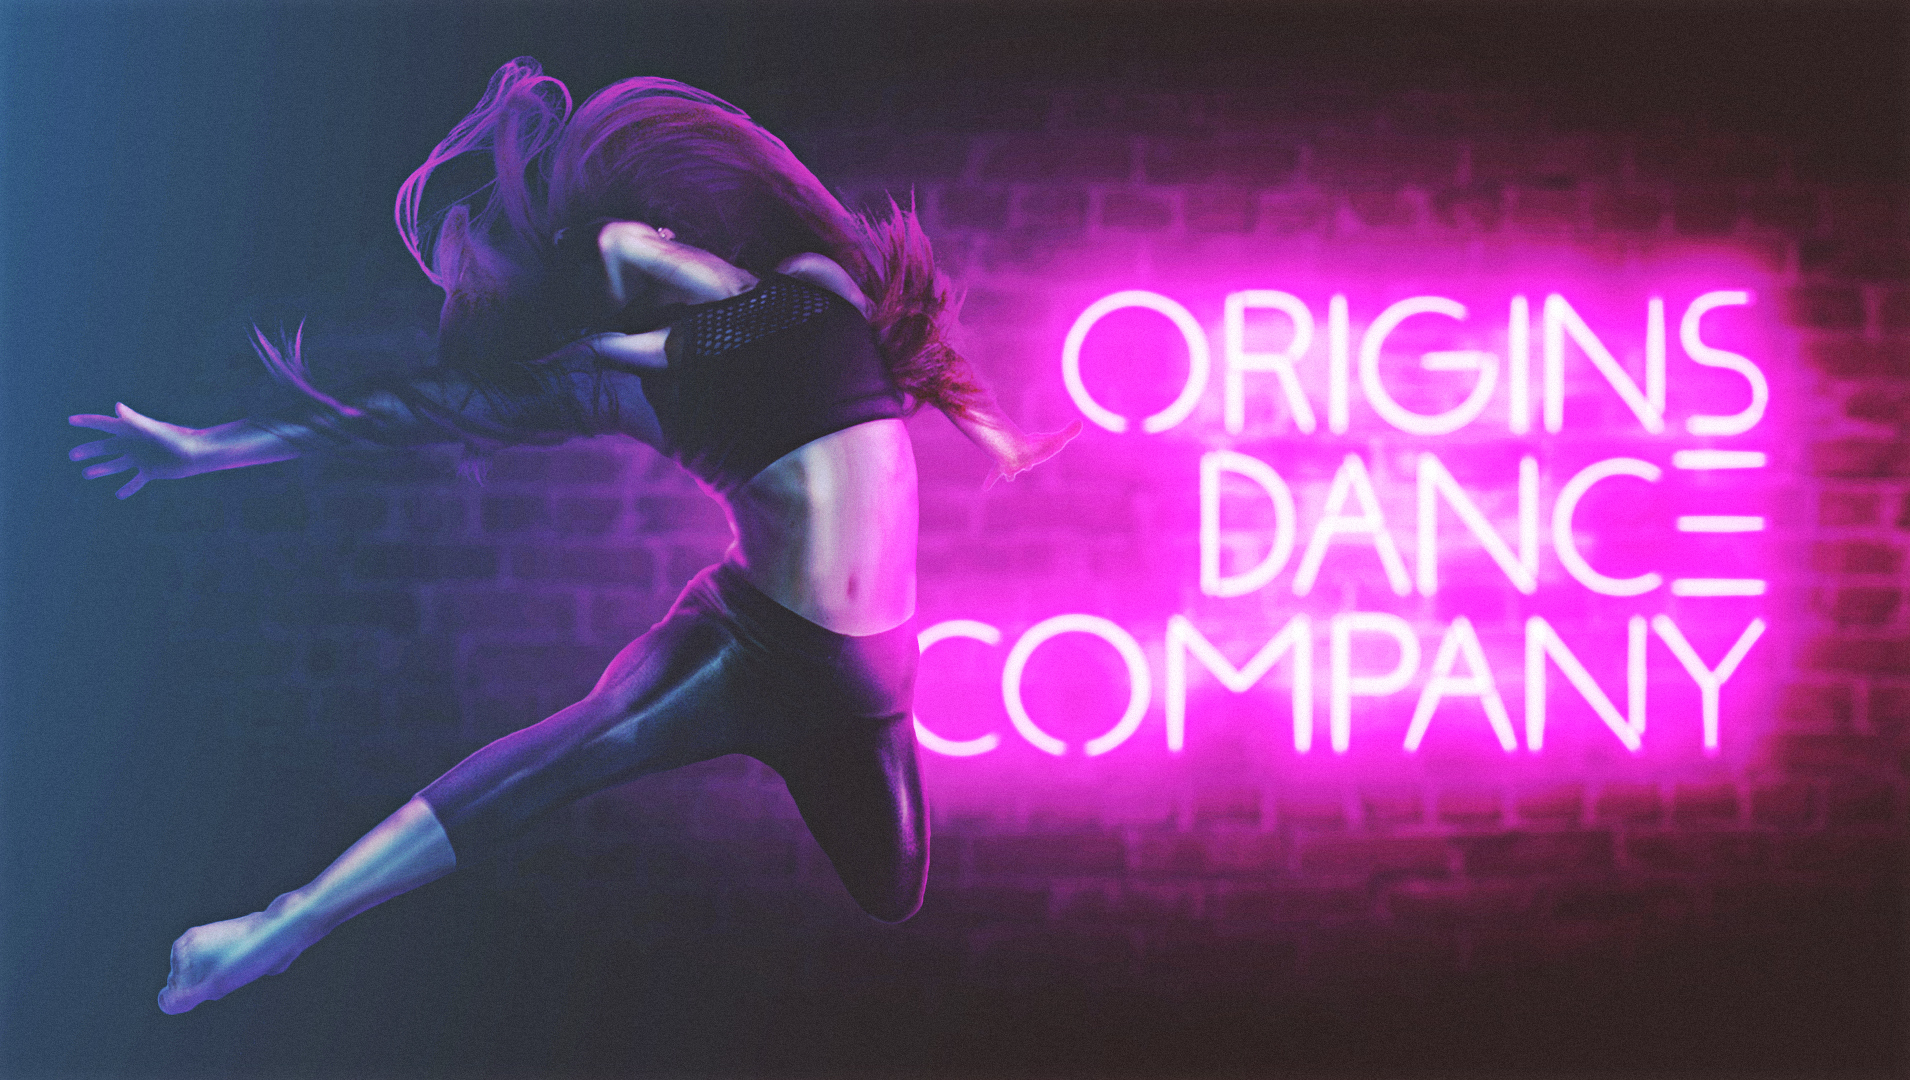 Program Summary: - Origins dance Company is a project based contemporary based Youth Dance Company.Duration: 12 monthsStart date: 7th February 2020Location: Brunswick, VictoriaArtistic Director: Jayden HicksChoreographers: Jayden Hicks, Freya ListFor information on Fees & Entry Criteria, download a prospectus here.